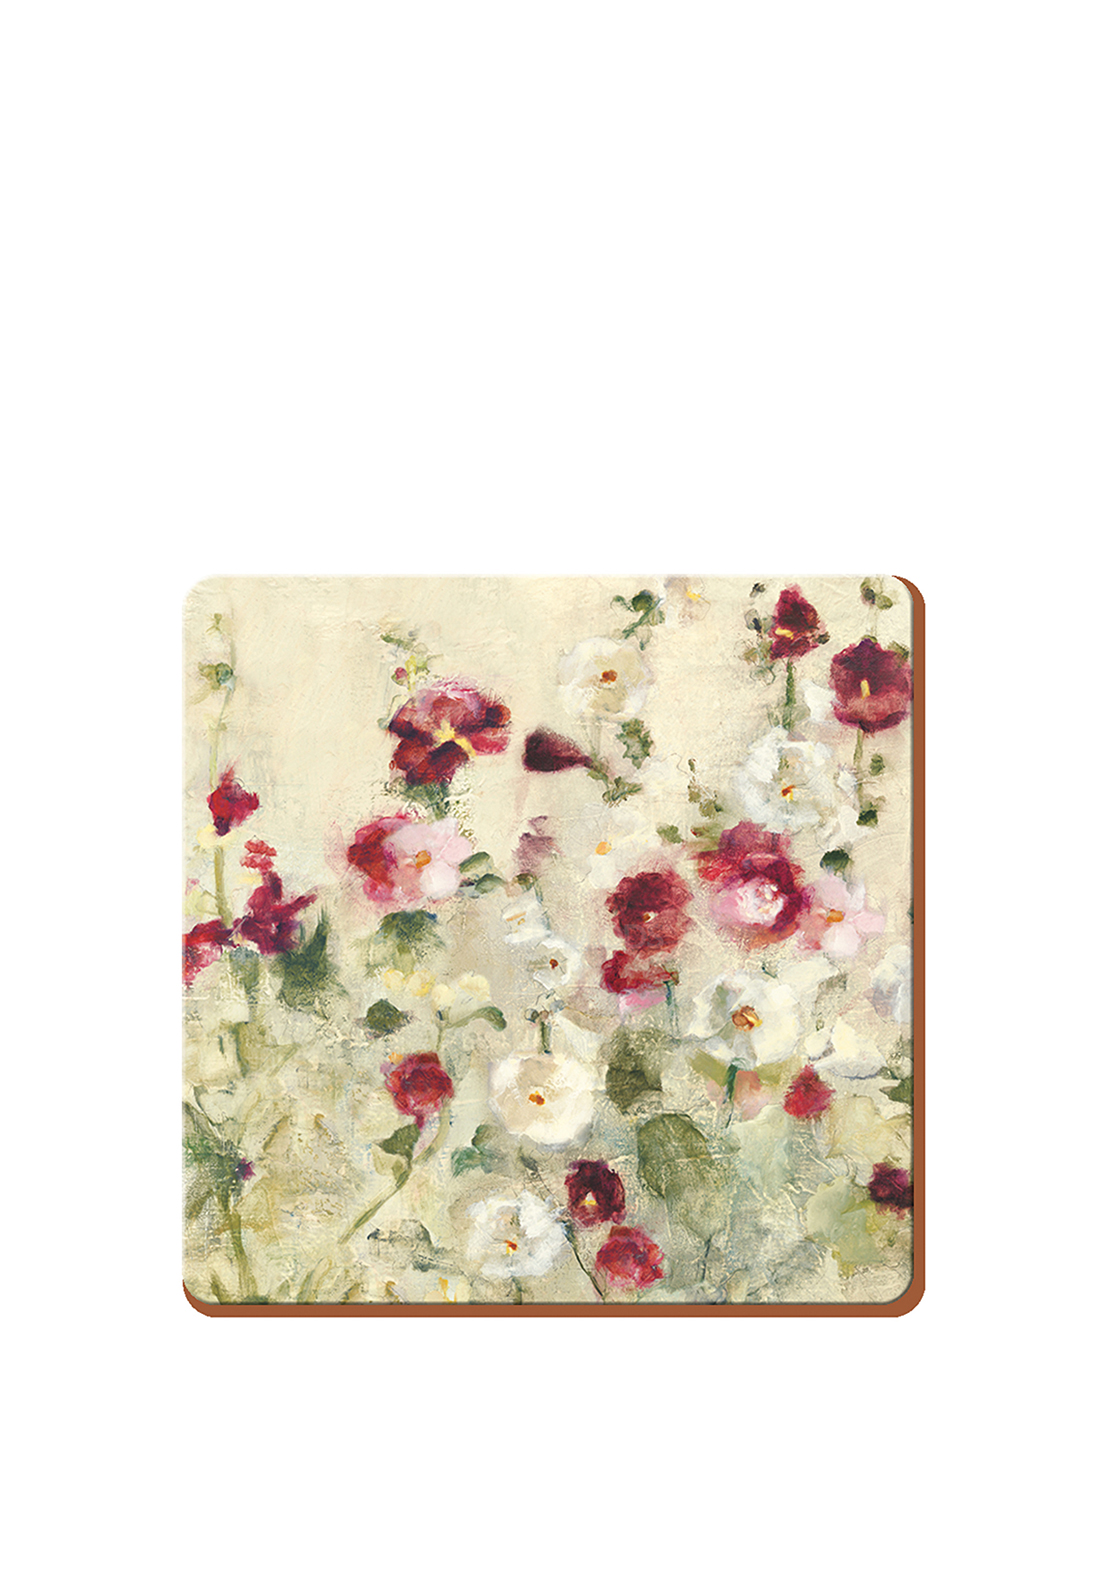 Creative Tops Wild Field Poppies Coasters 6 Pack